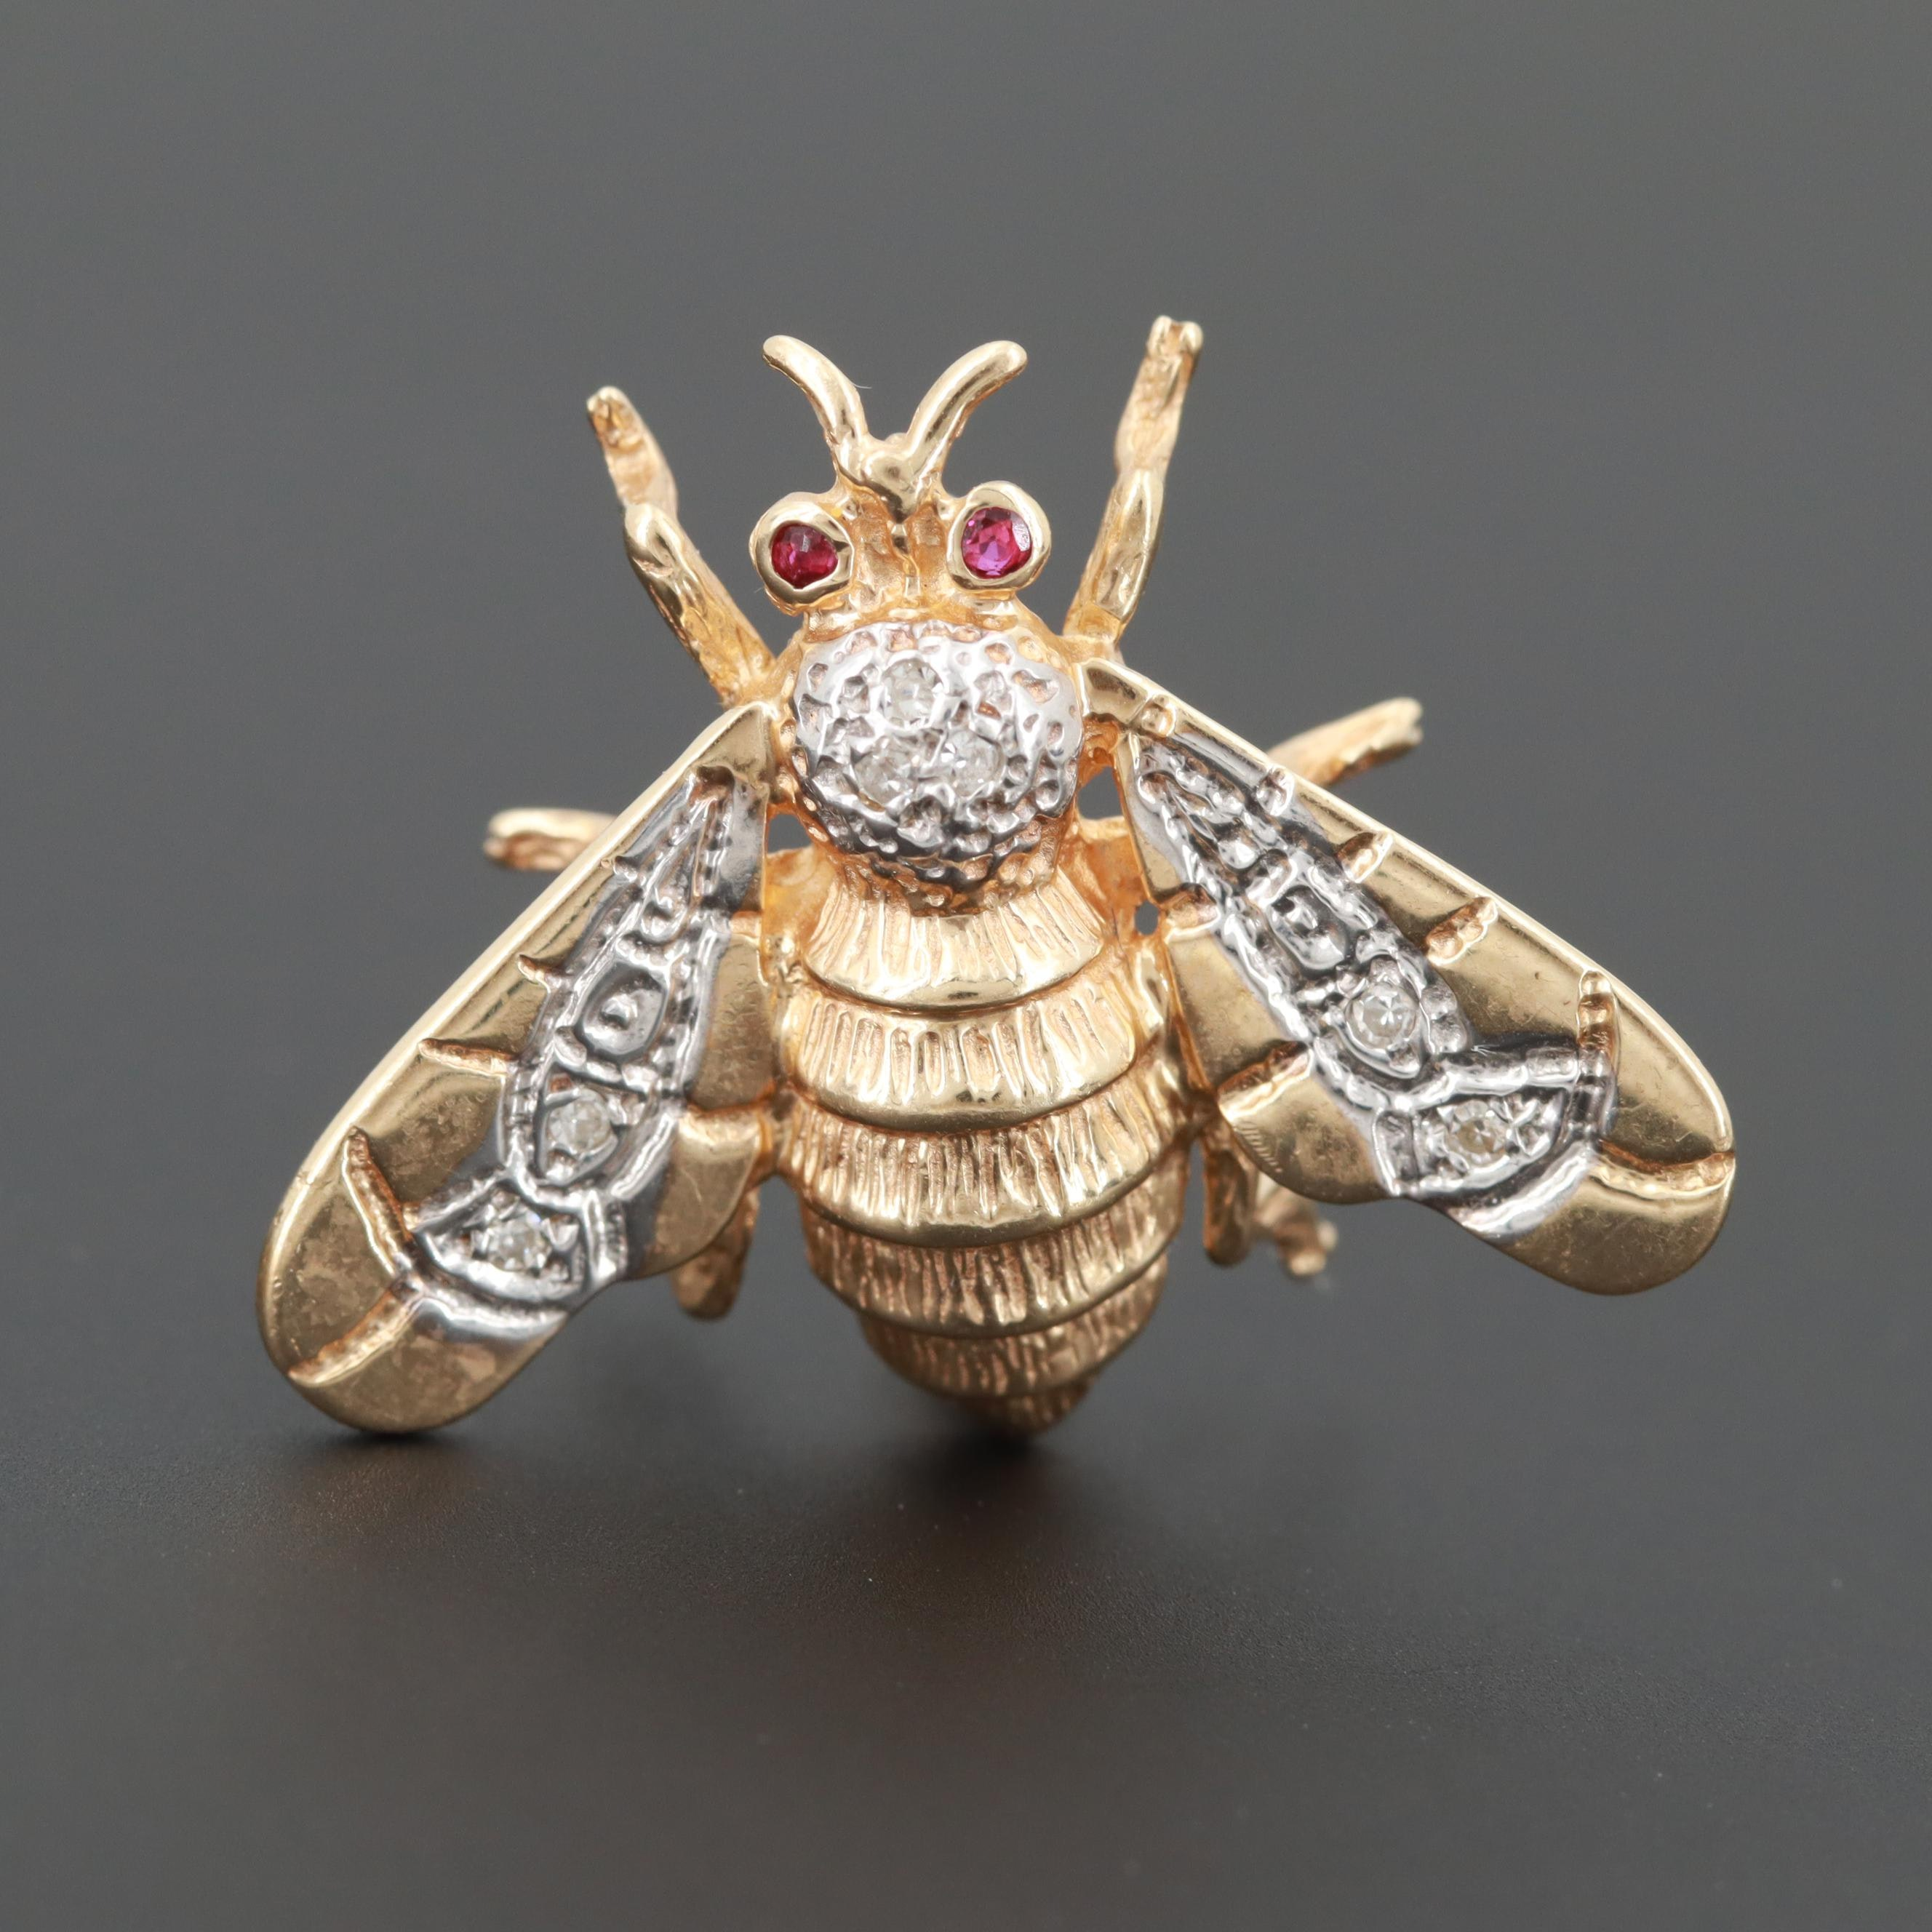 14K Yellow Gold Diamond and Ruby Bee Brooch with White Gold Accents